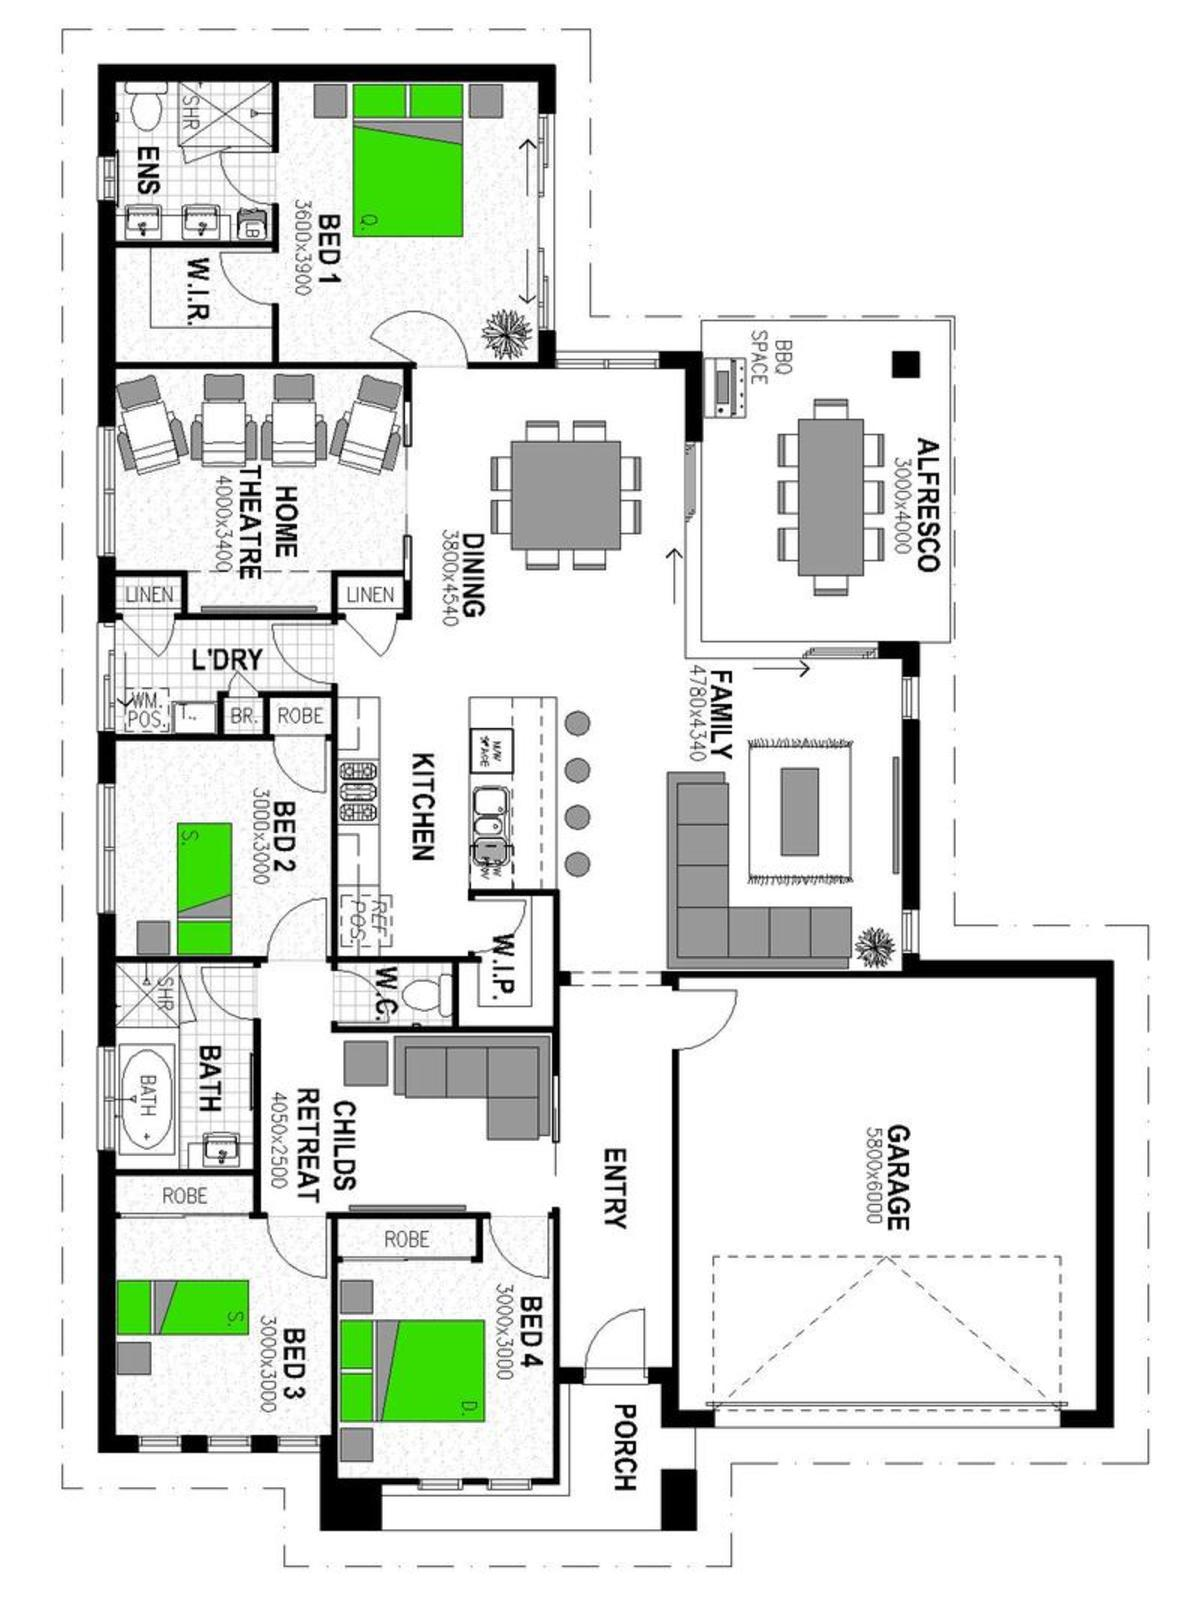 LOT 43 WARROCK PLACE BOURKELANDS Floorplan